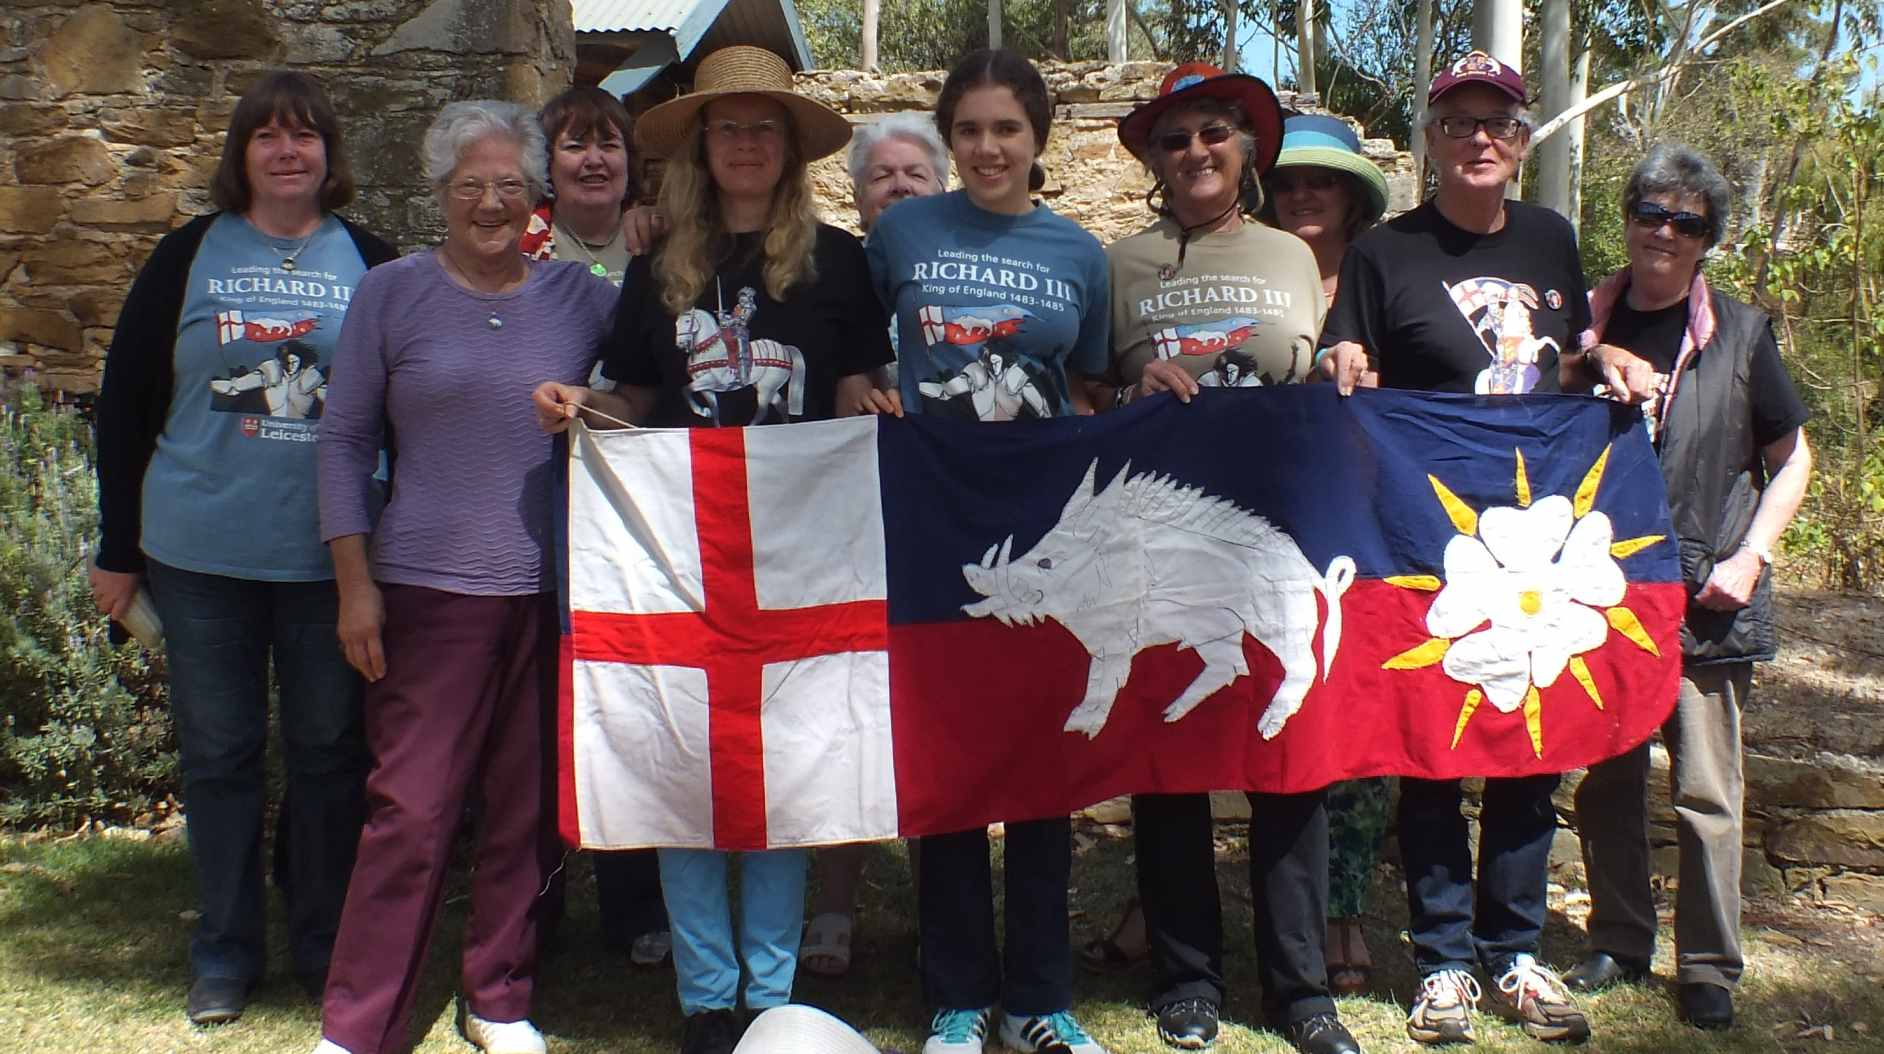 Battle of Bosworth winery picnic march 2015 the branch